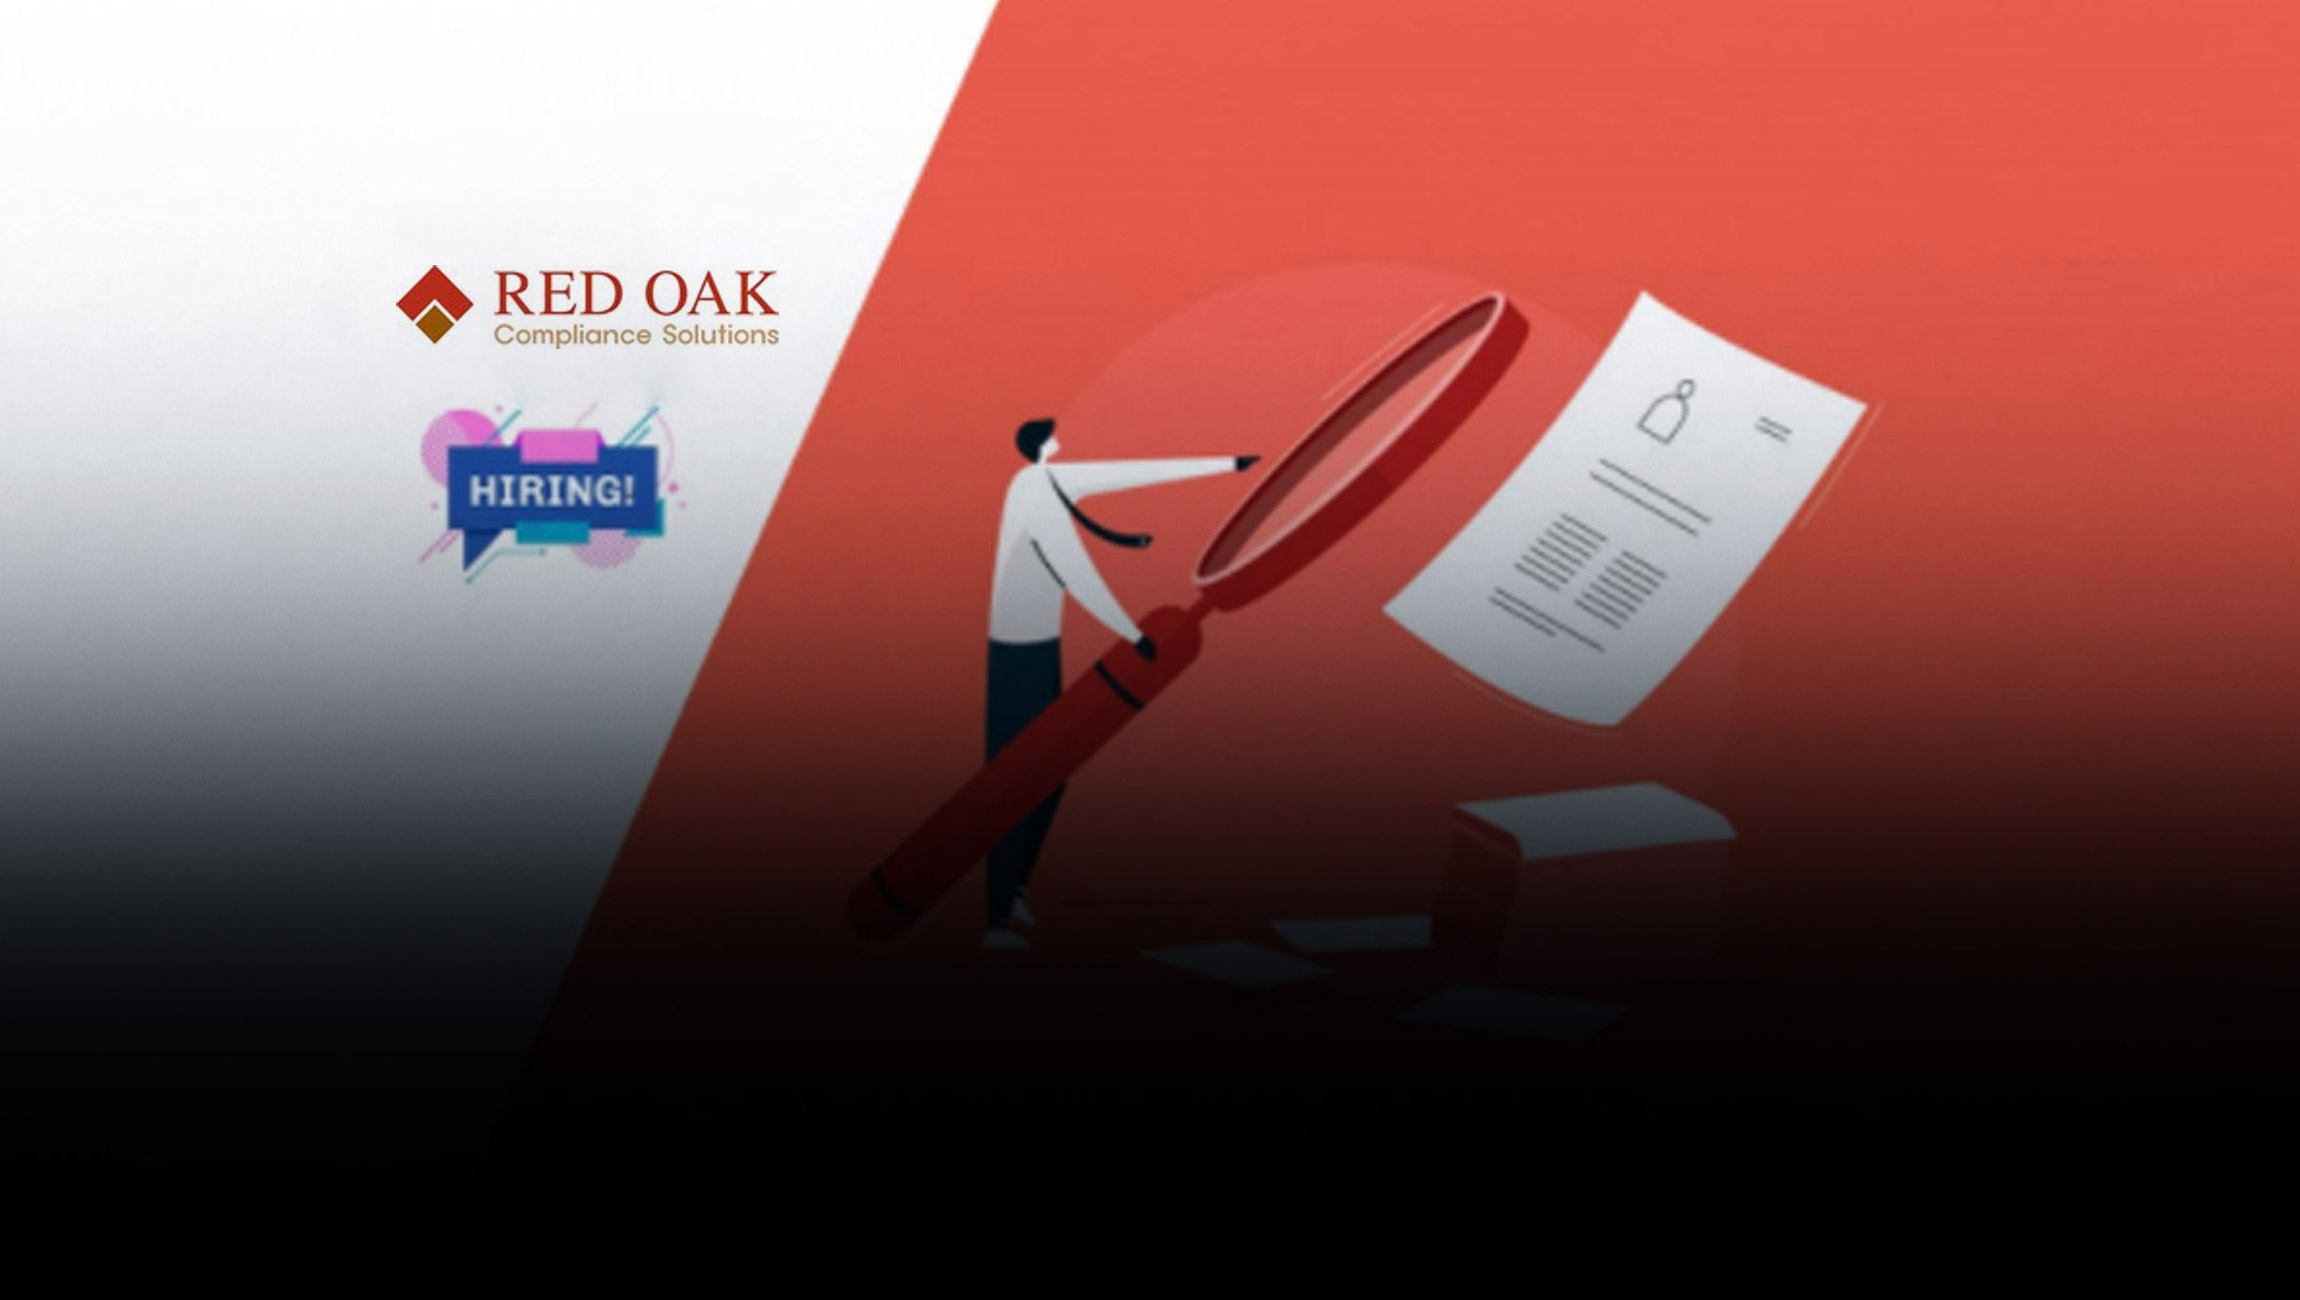 Red-Oak-Hires-James-K.-Ryan_-Former-SVP-Of-Sales-At-Compliance-Risk-Concepts-And-RegEd-As-Director-Of-Business-Development